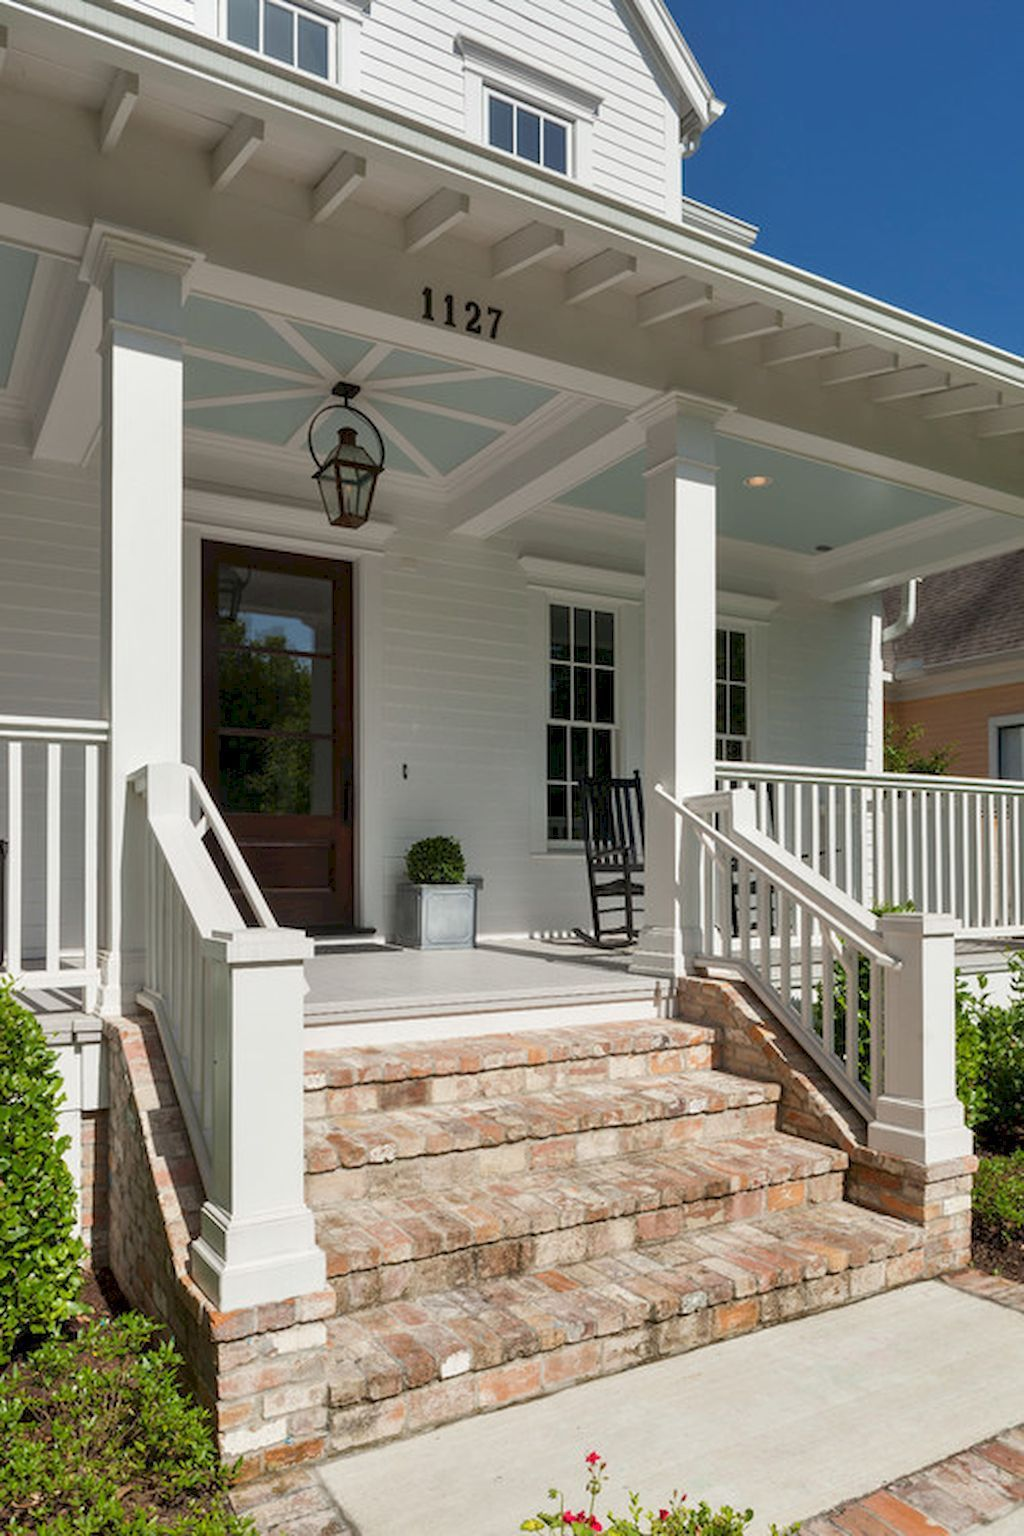 Rustic Farmhouse Porch Steps Decor Ideas 7 Porch Design Front